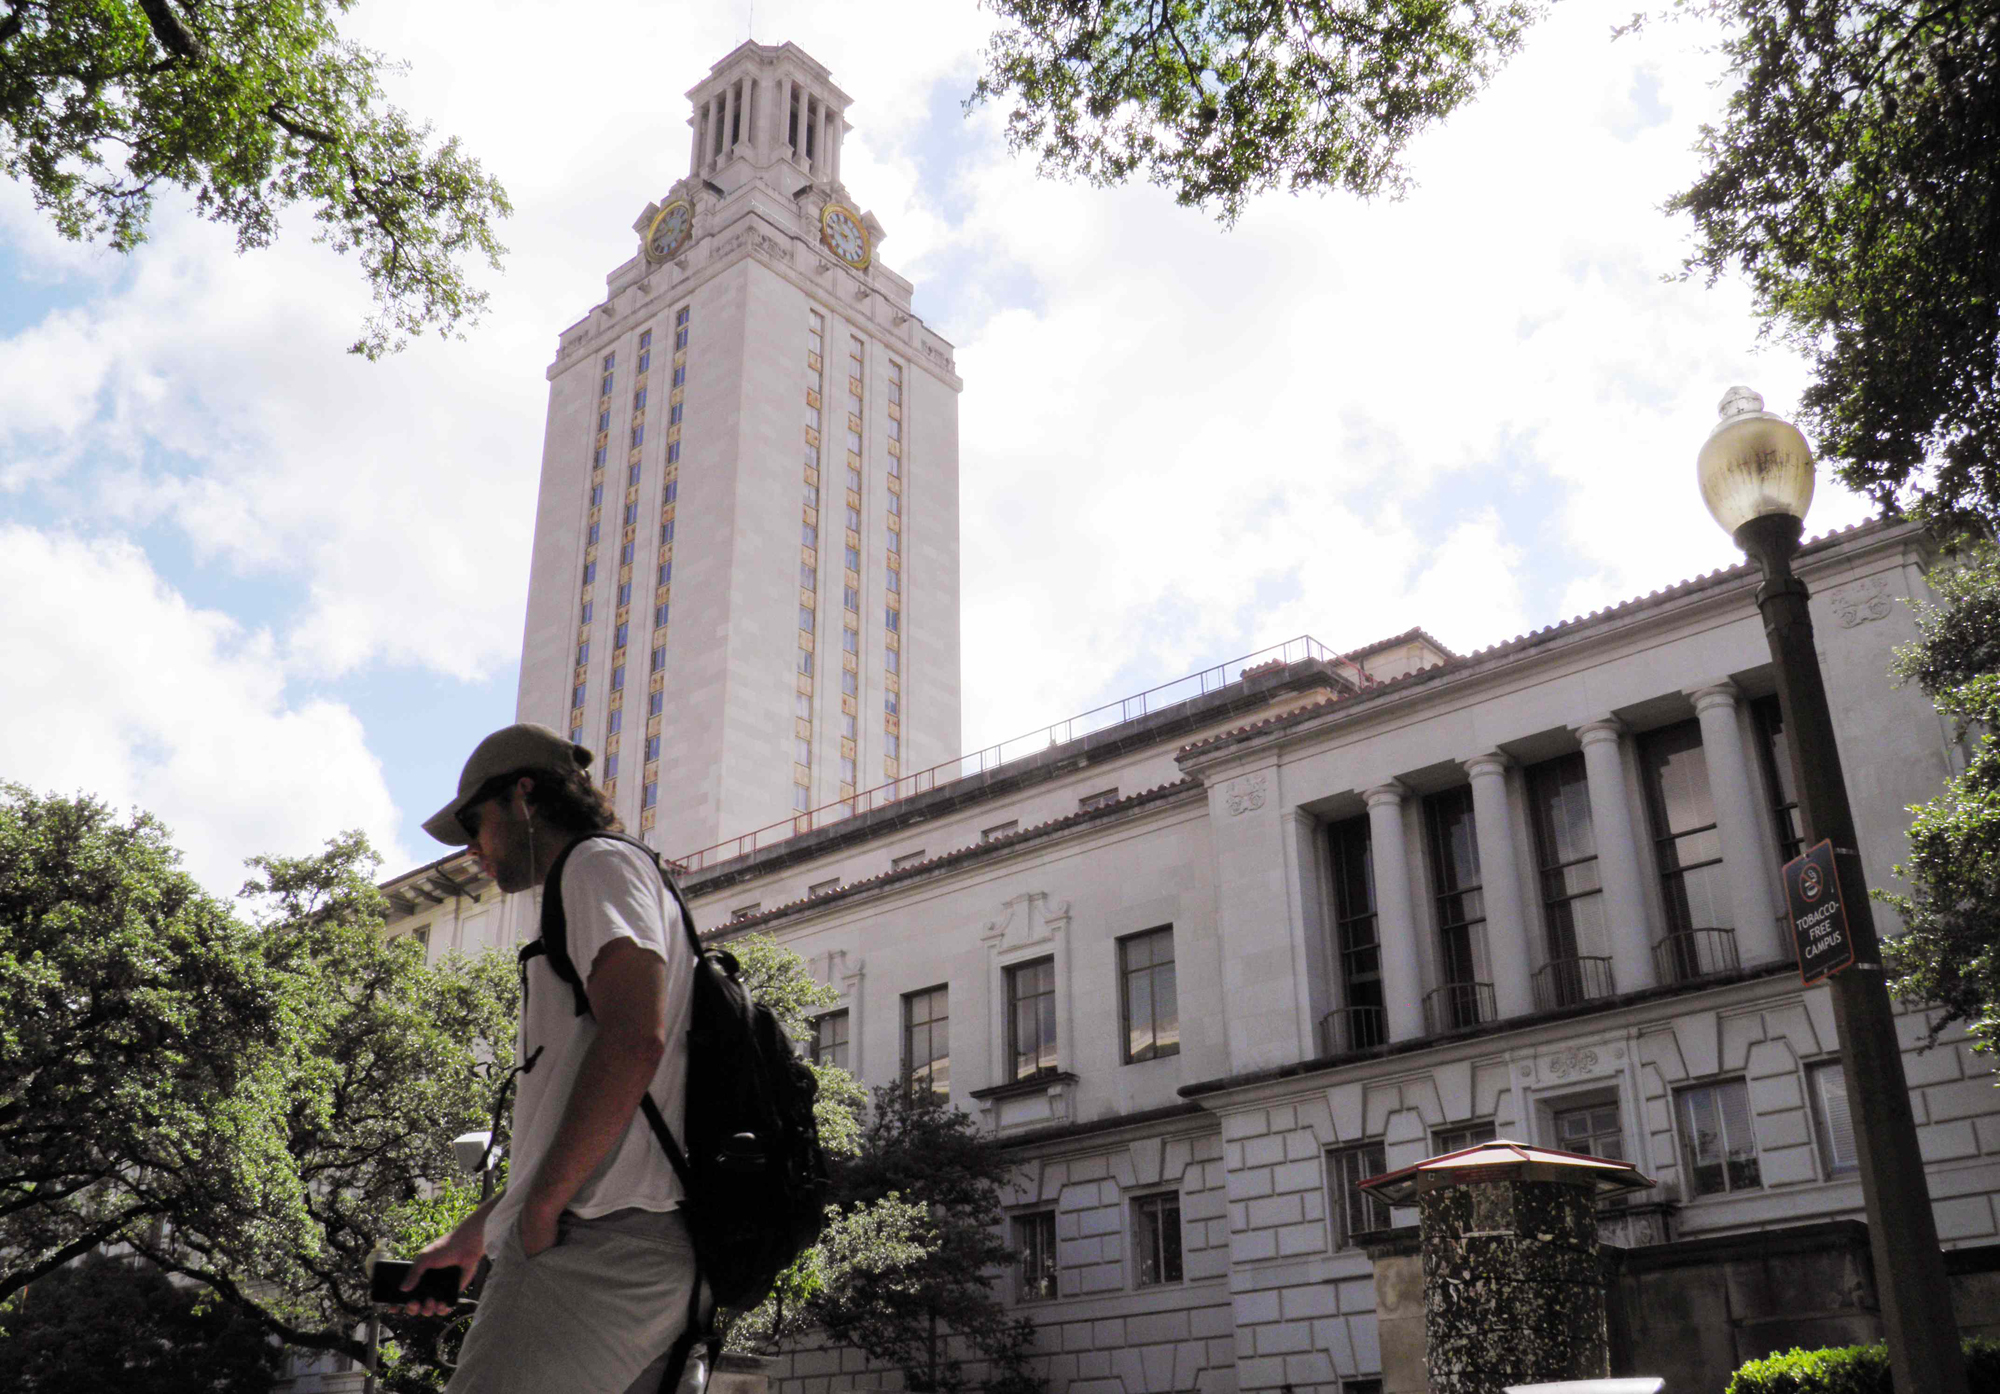 A student walks at the University of Texas campus in Austin, Texas, U.S. on June 23, 2016.